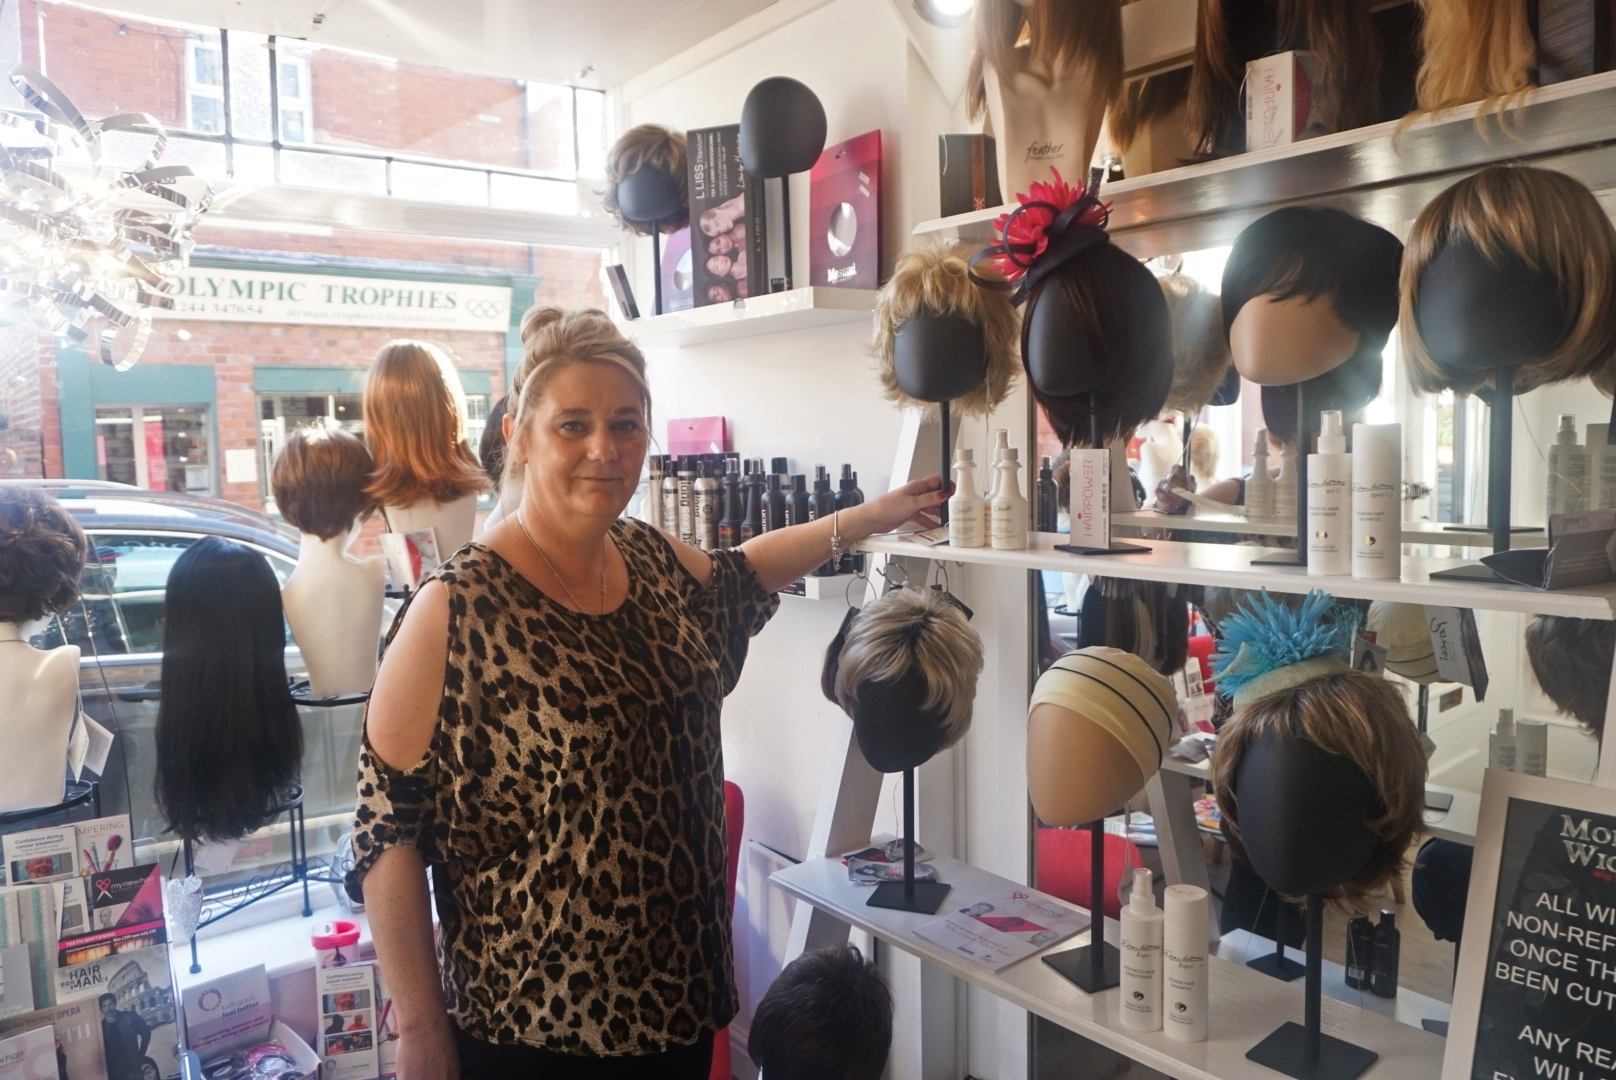 Meet the manager of the Chester wig store which has helped countless cancer patients and people with alopecia over the past year